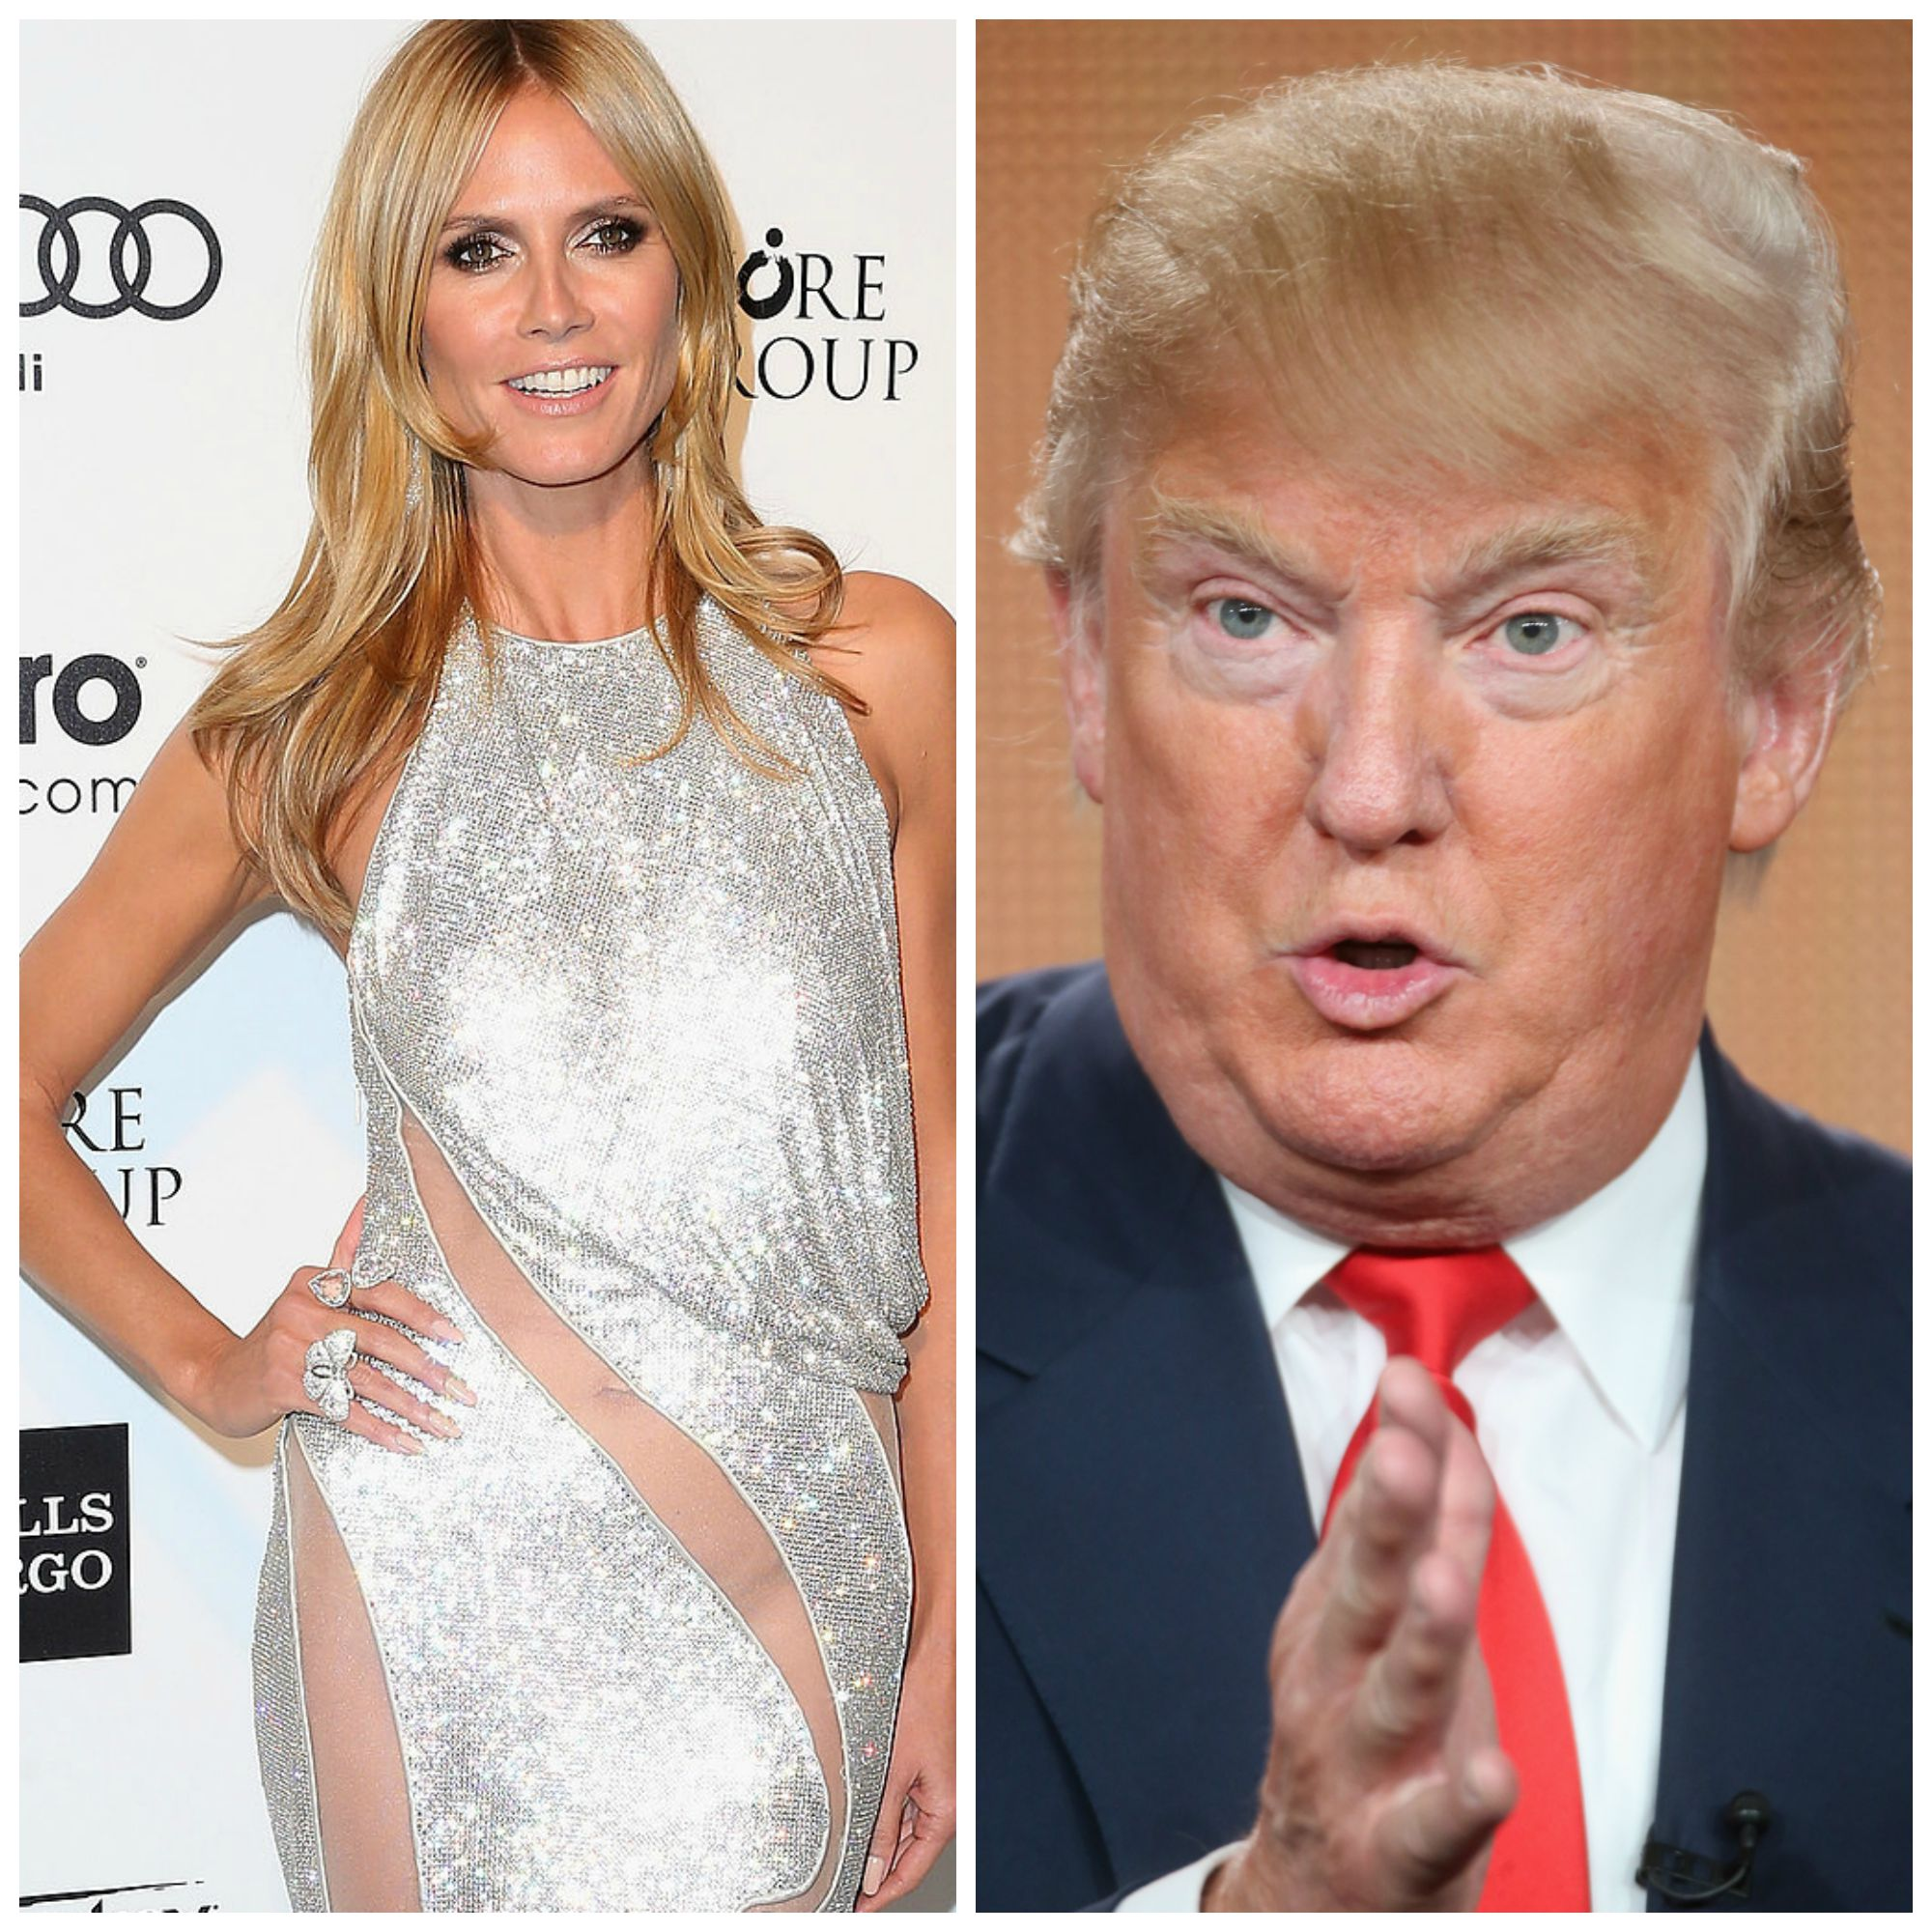 Heidi Klum and Donald Trump